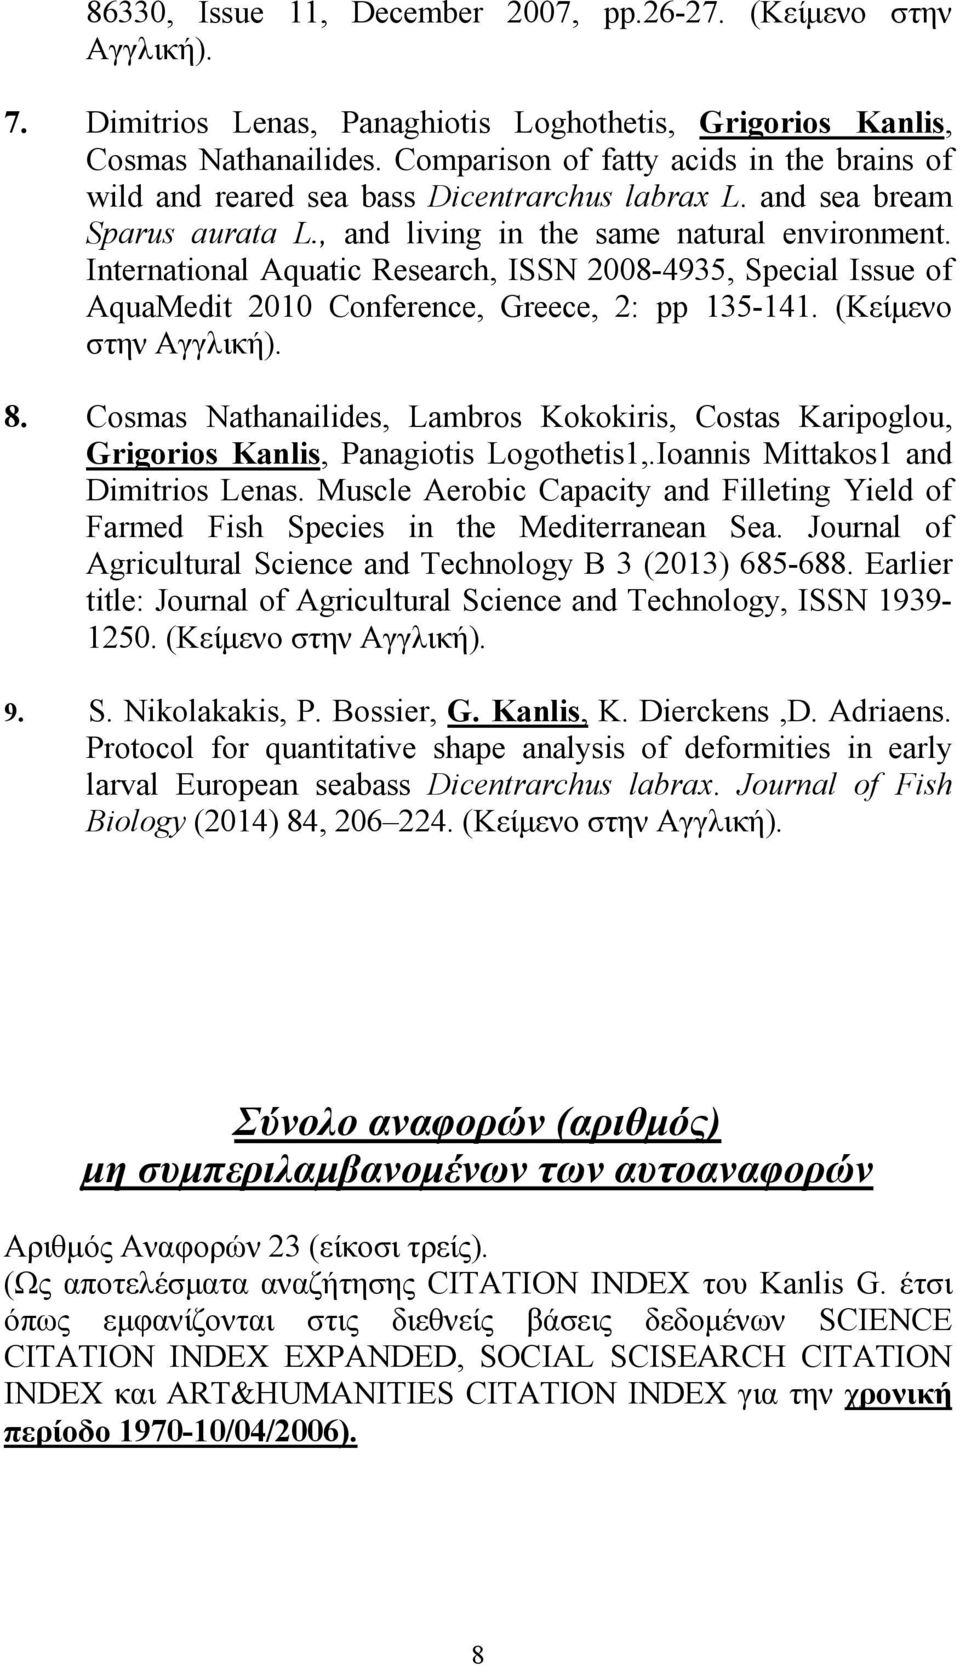 International Aquatic Research, ISSN 2008-4935, Special Issue of AquaMedit 2010 Conference, Greece, 2: pp 135-141. (Κείµενο στην Αγγλική). 8.